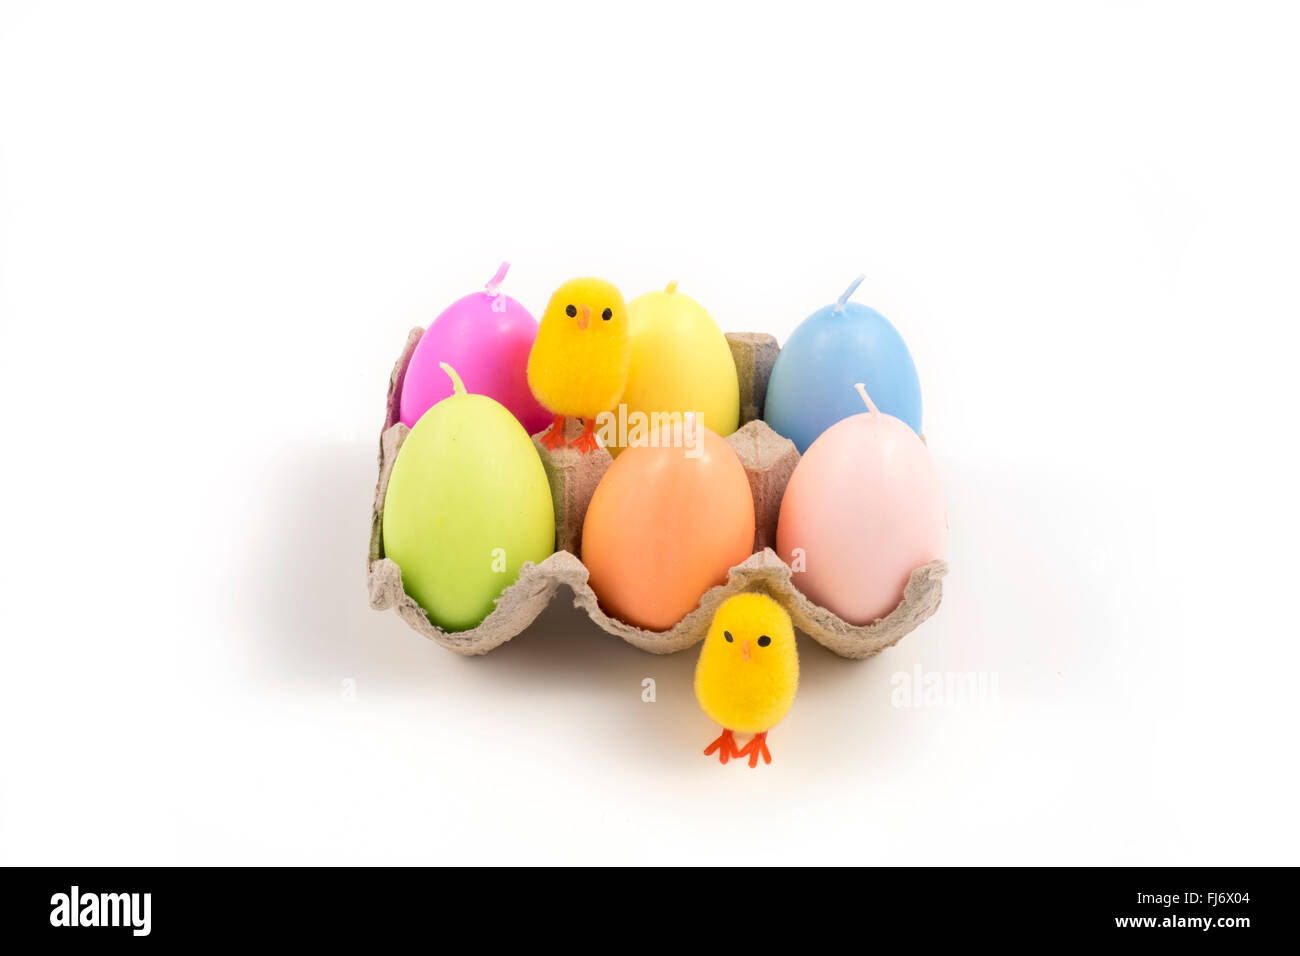 Easter, small chick and colored eggs - Stock Image